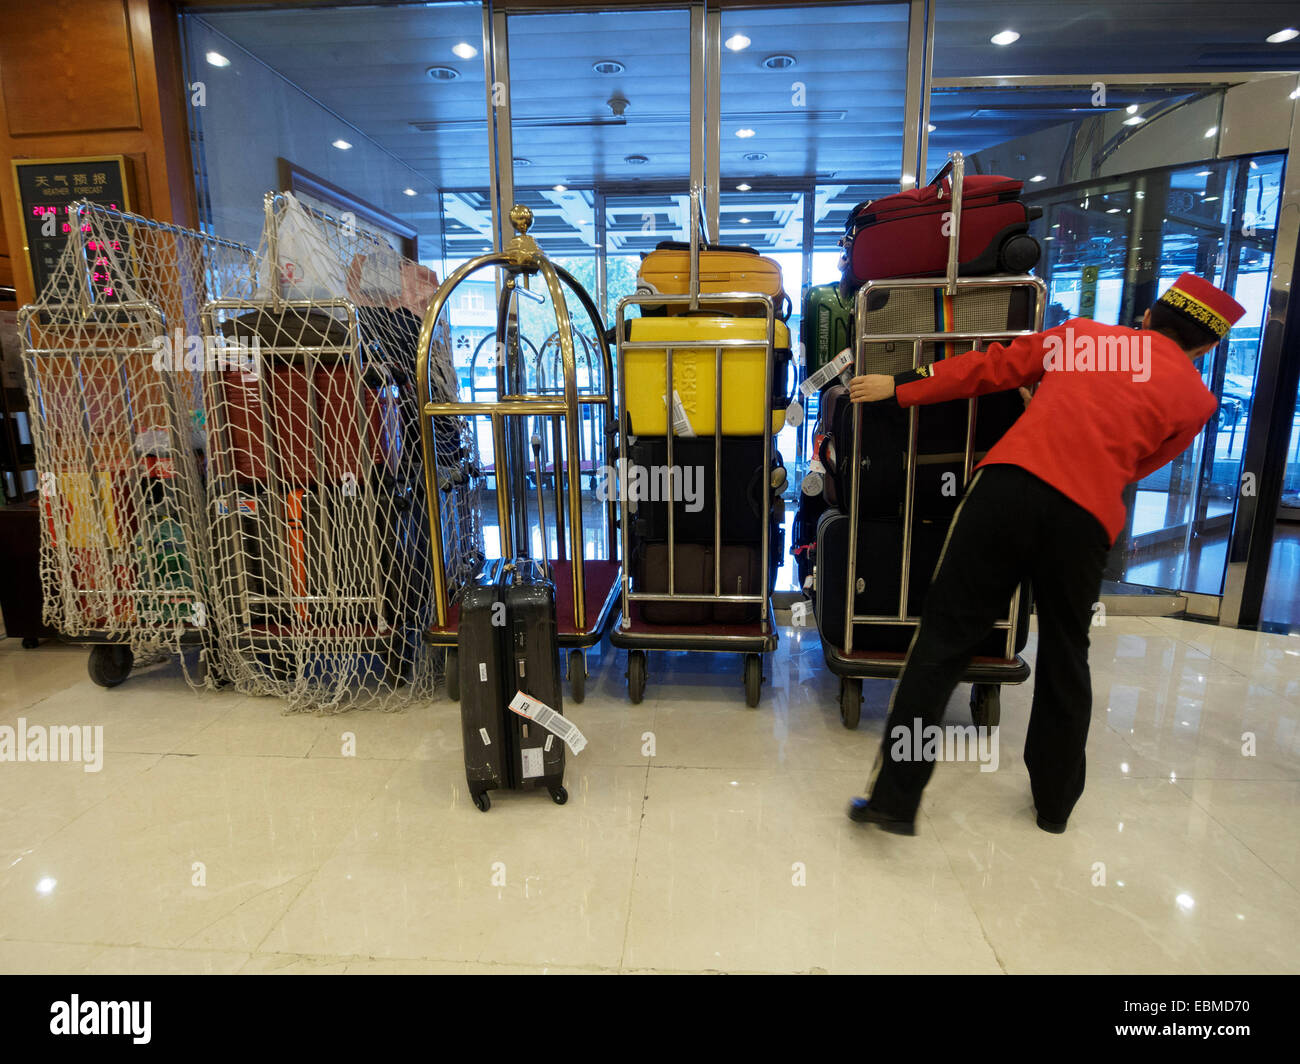 Bellboy in uniform pushing luggage in an Hotel - Stock Image